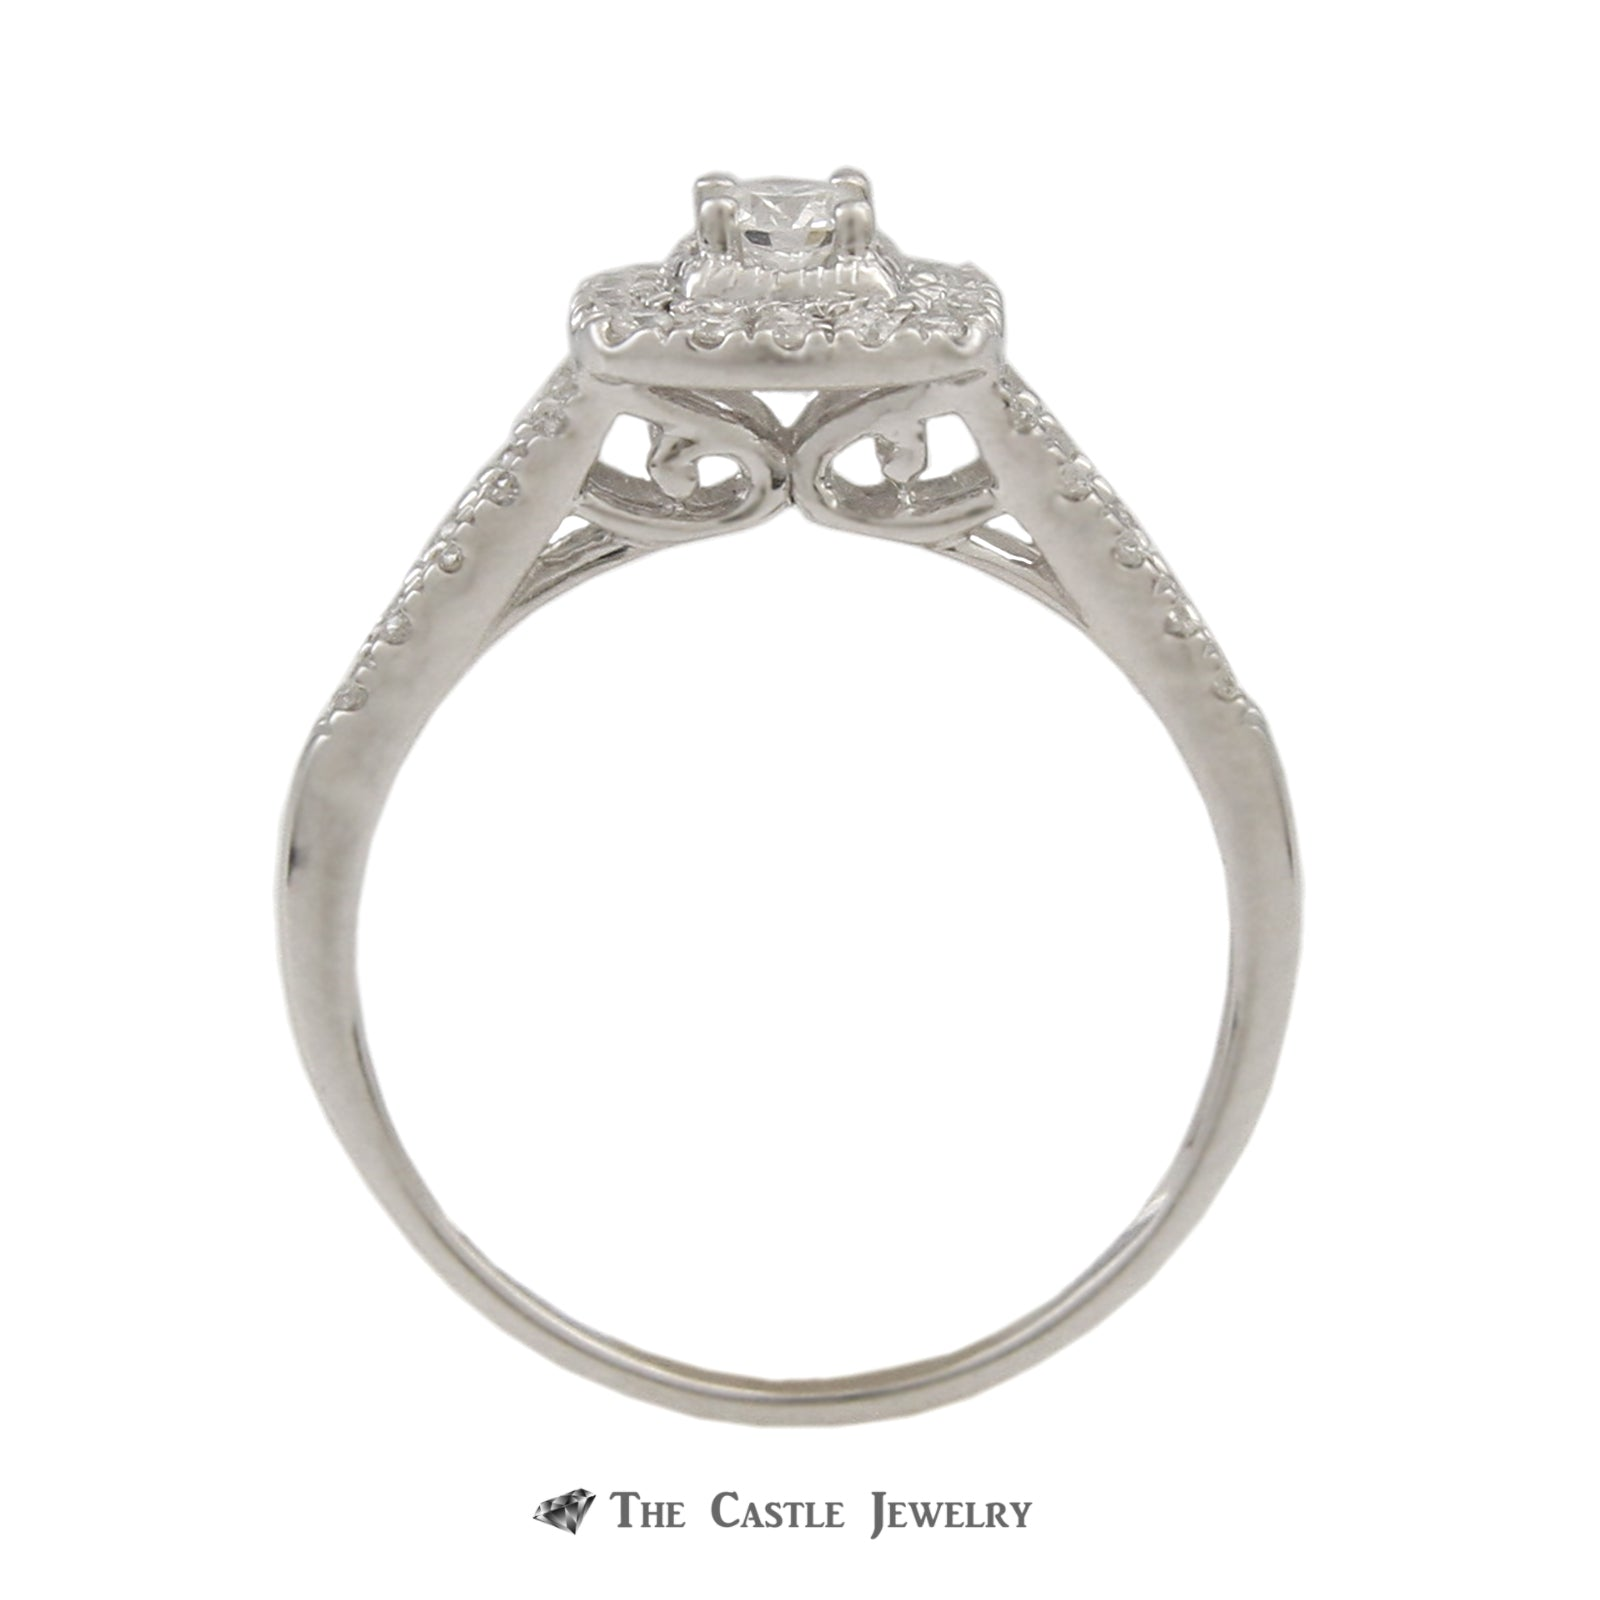 Crown Collection 1/2cttw Bridal Set with Round Diamond Center & Cushion Shaped Bezel in 14k-1